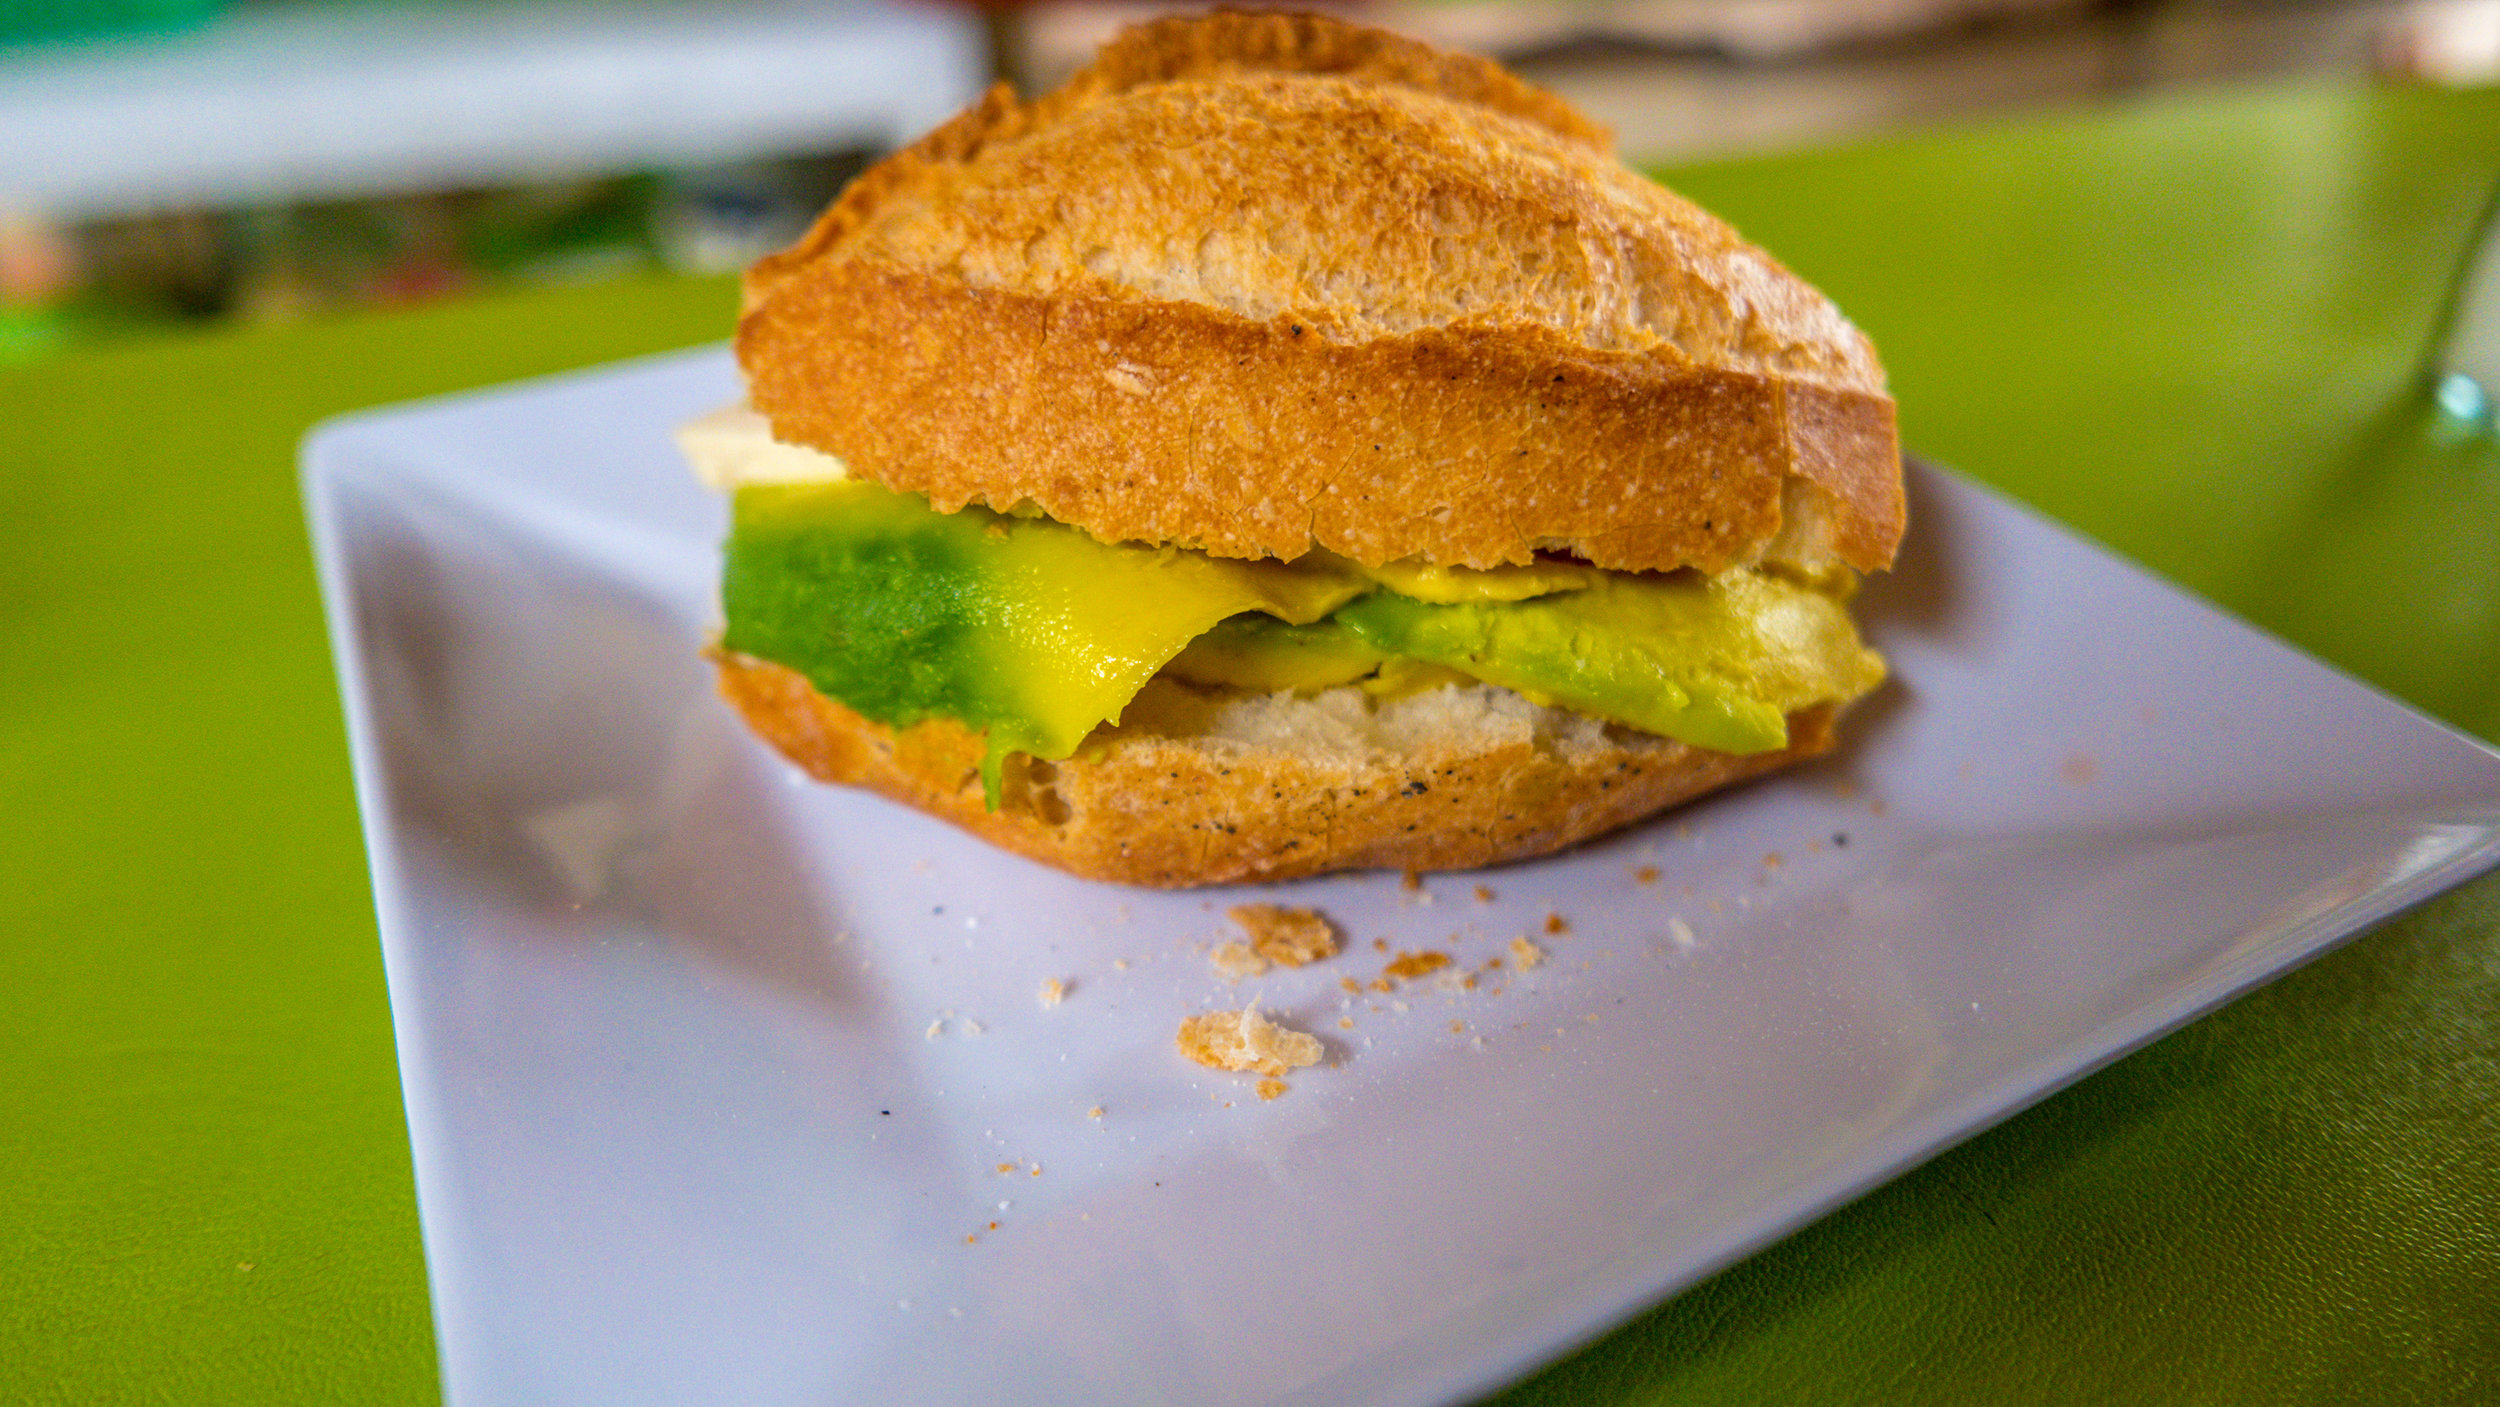 $0.36 avocado sandwiches for brekkie, lunch and dinner